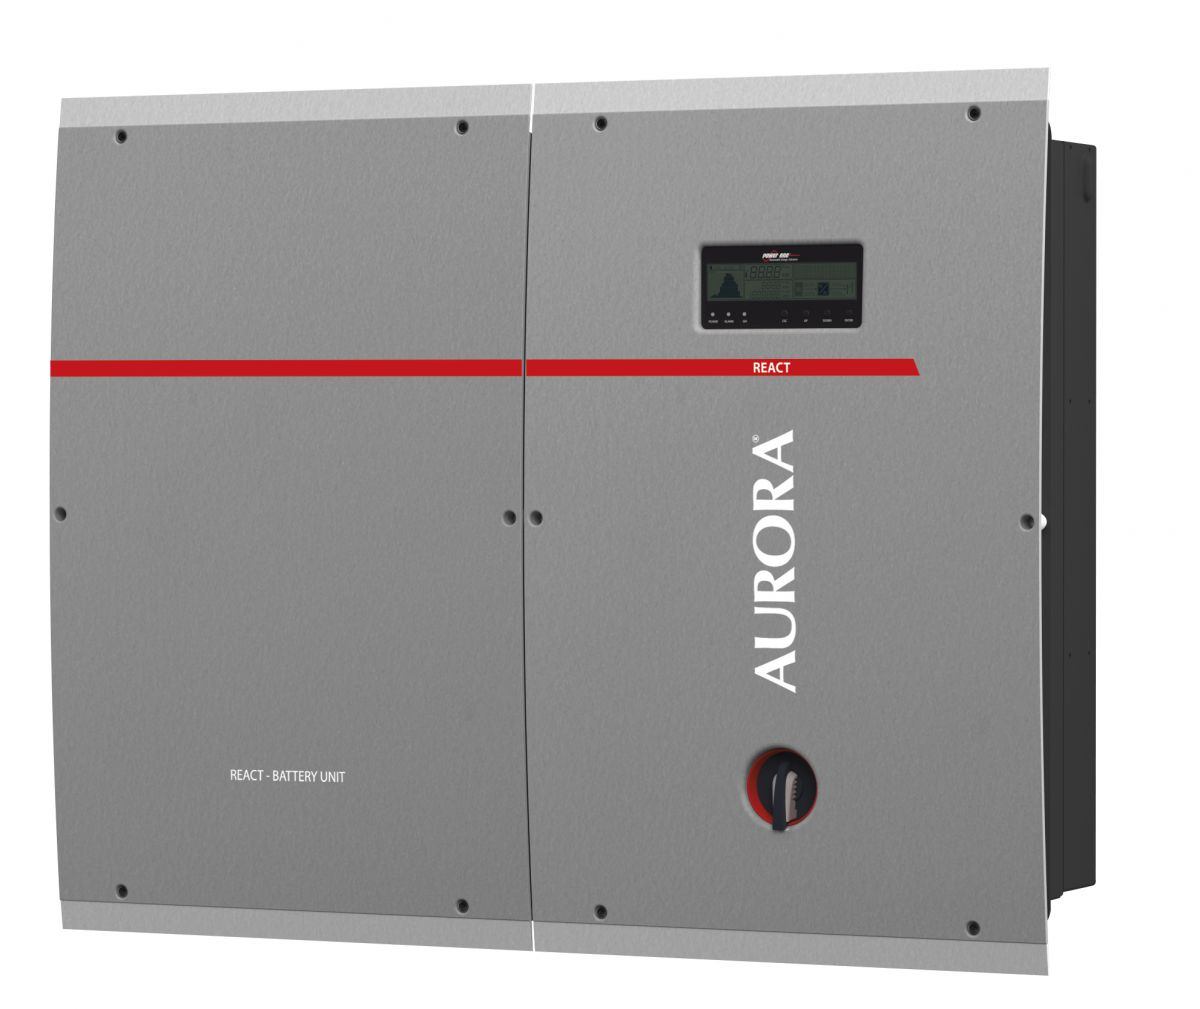 REACT energy storage system, with Aurora inverter. Photo credit: Power ...